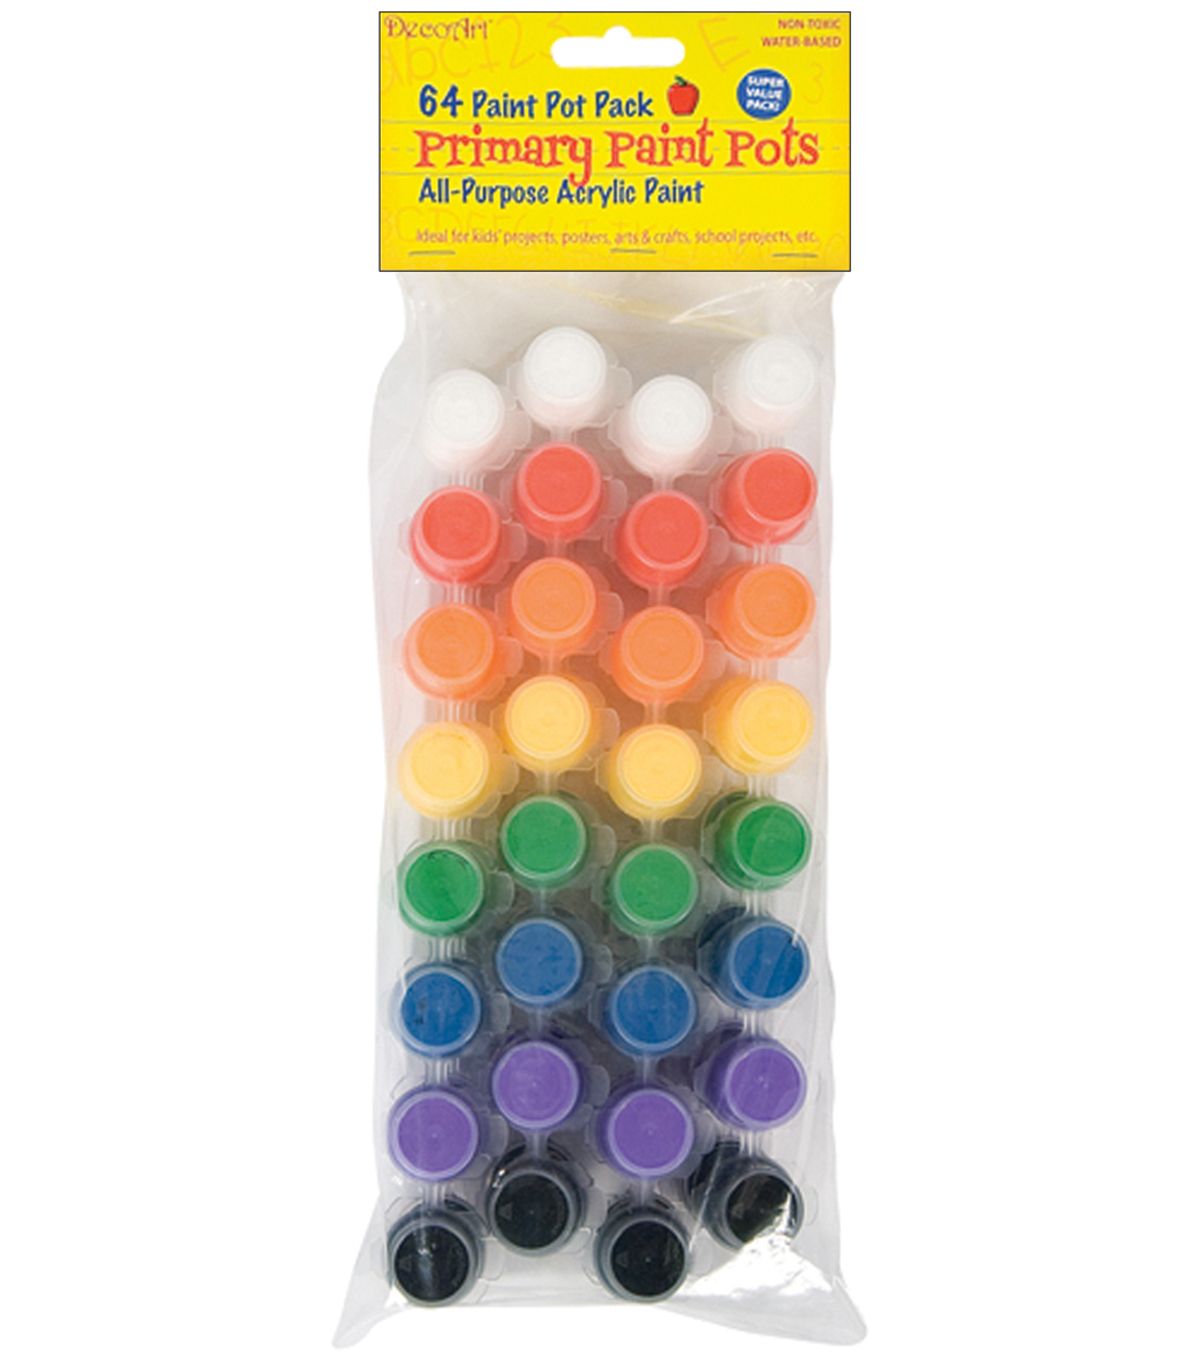 DecoArt Acrylic Paint Pots-64PK/Primary